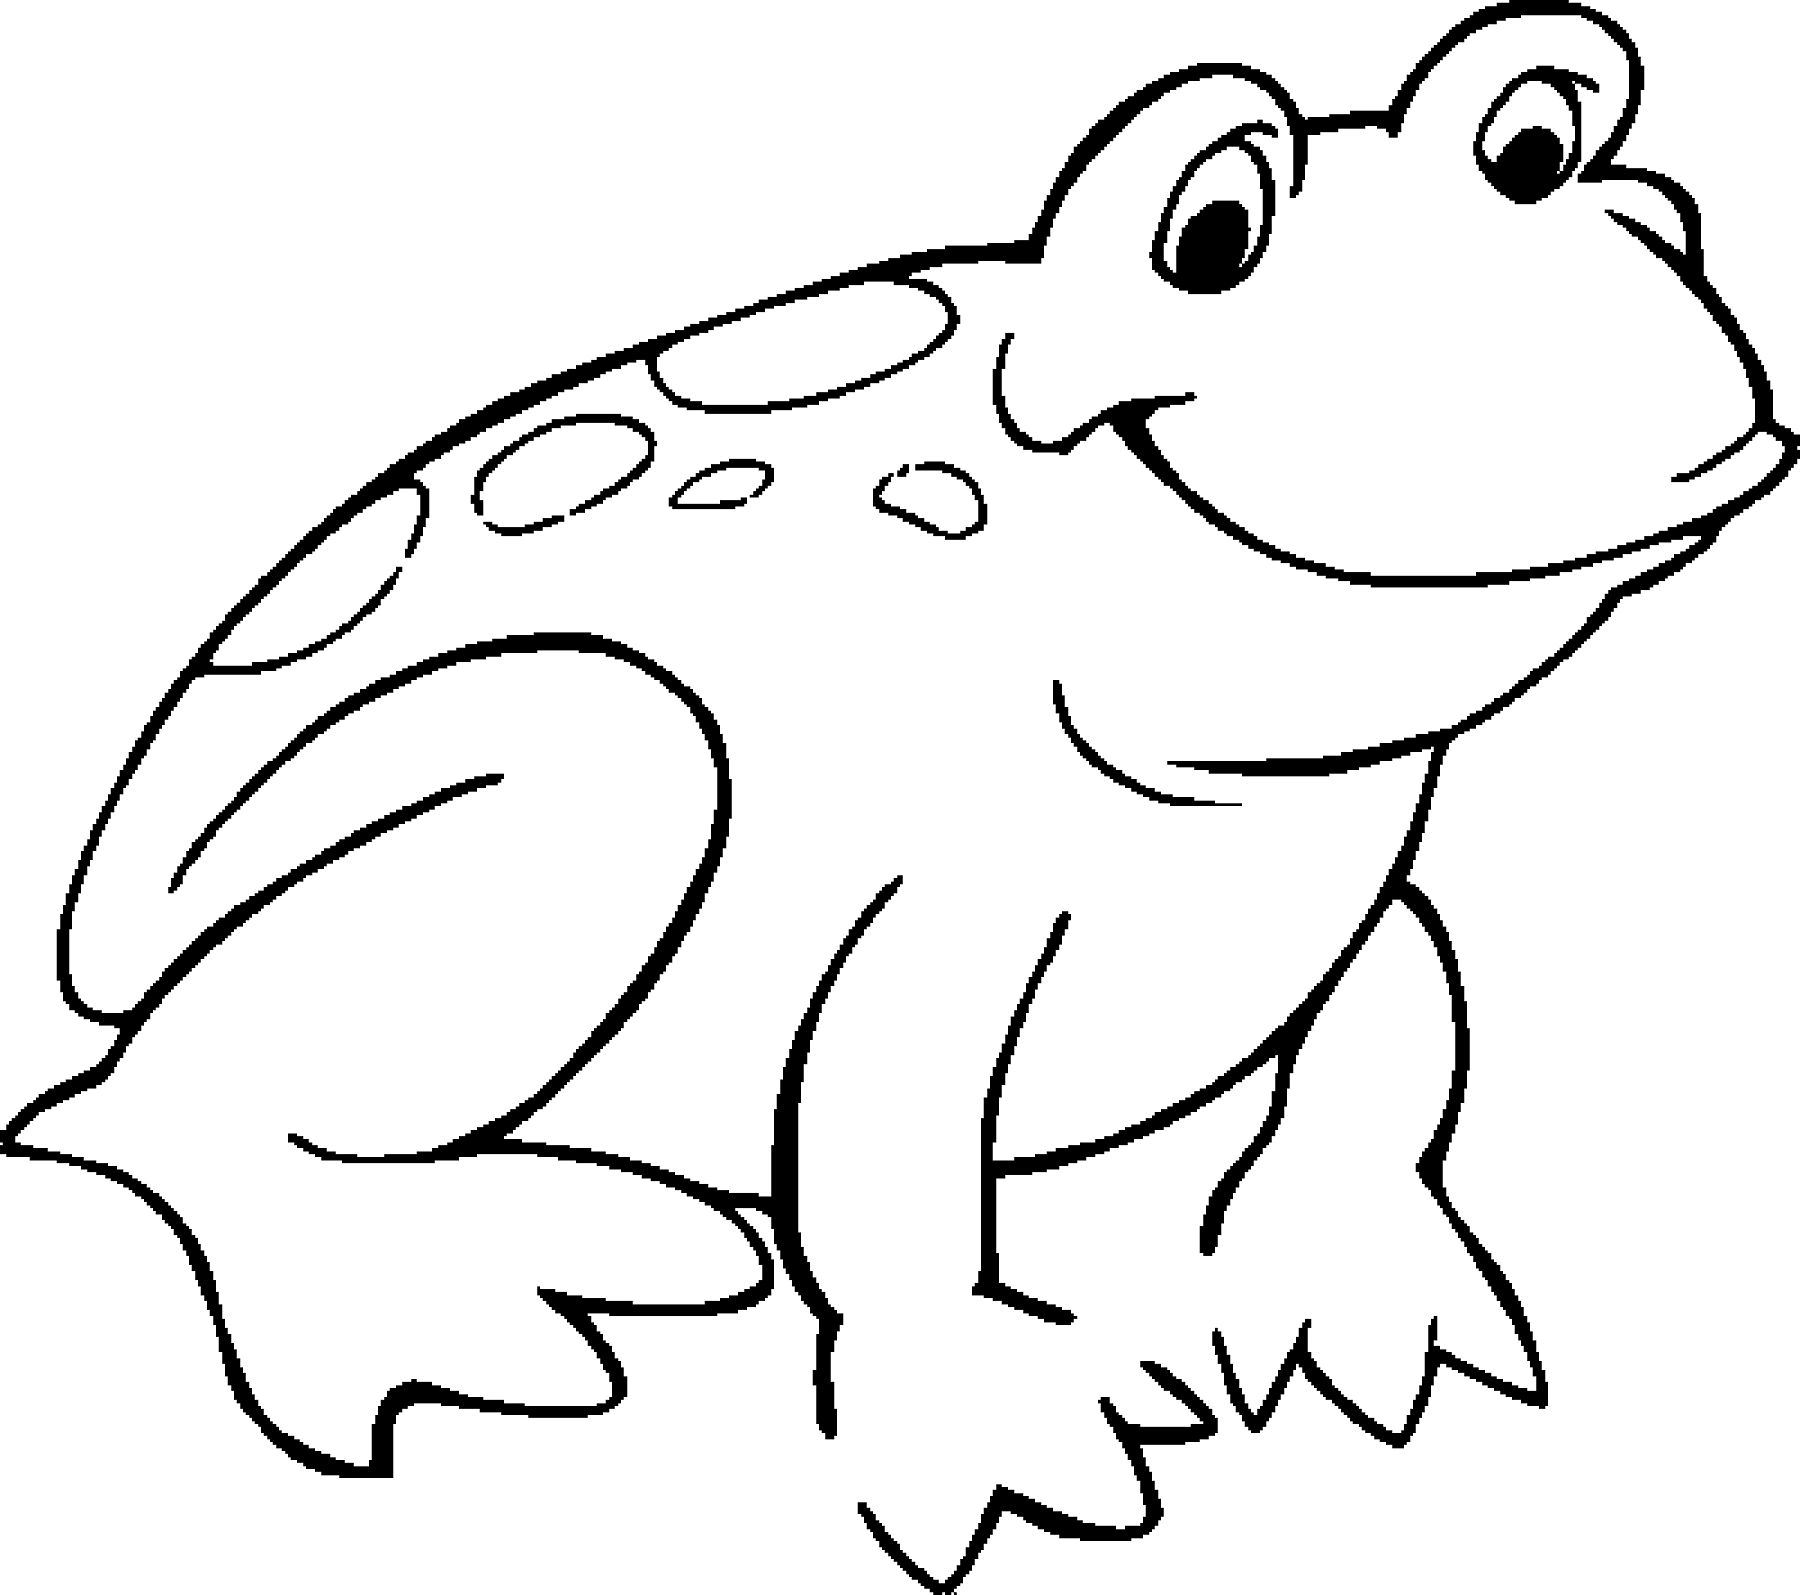 graphic regarding Frog Printable titled Uncomplicated Frog Drawing For Youngsters at  Totally free for